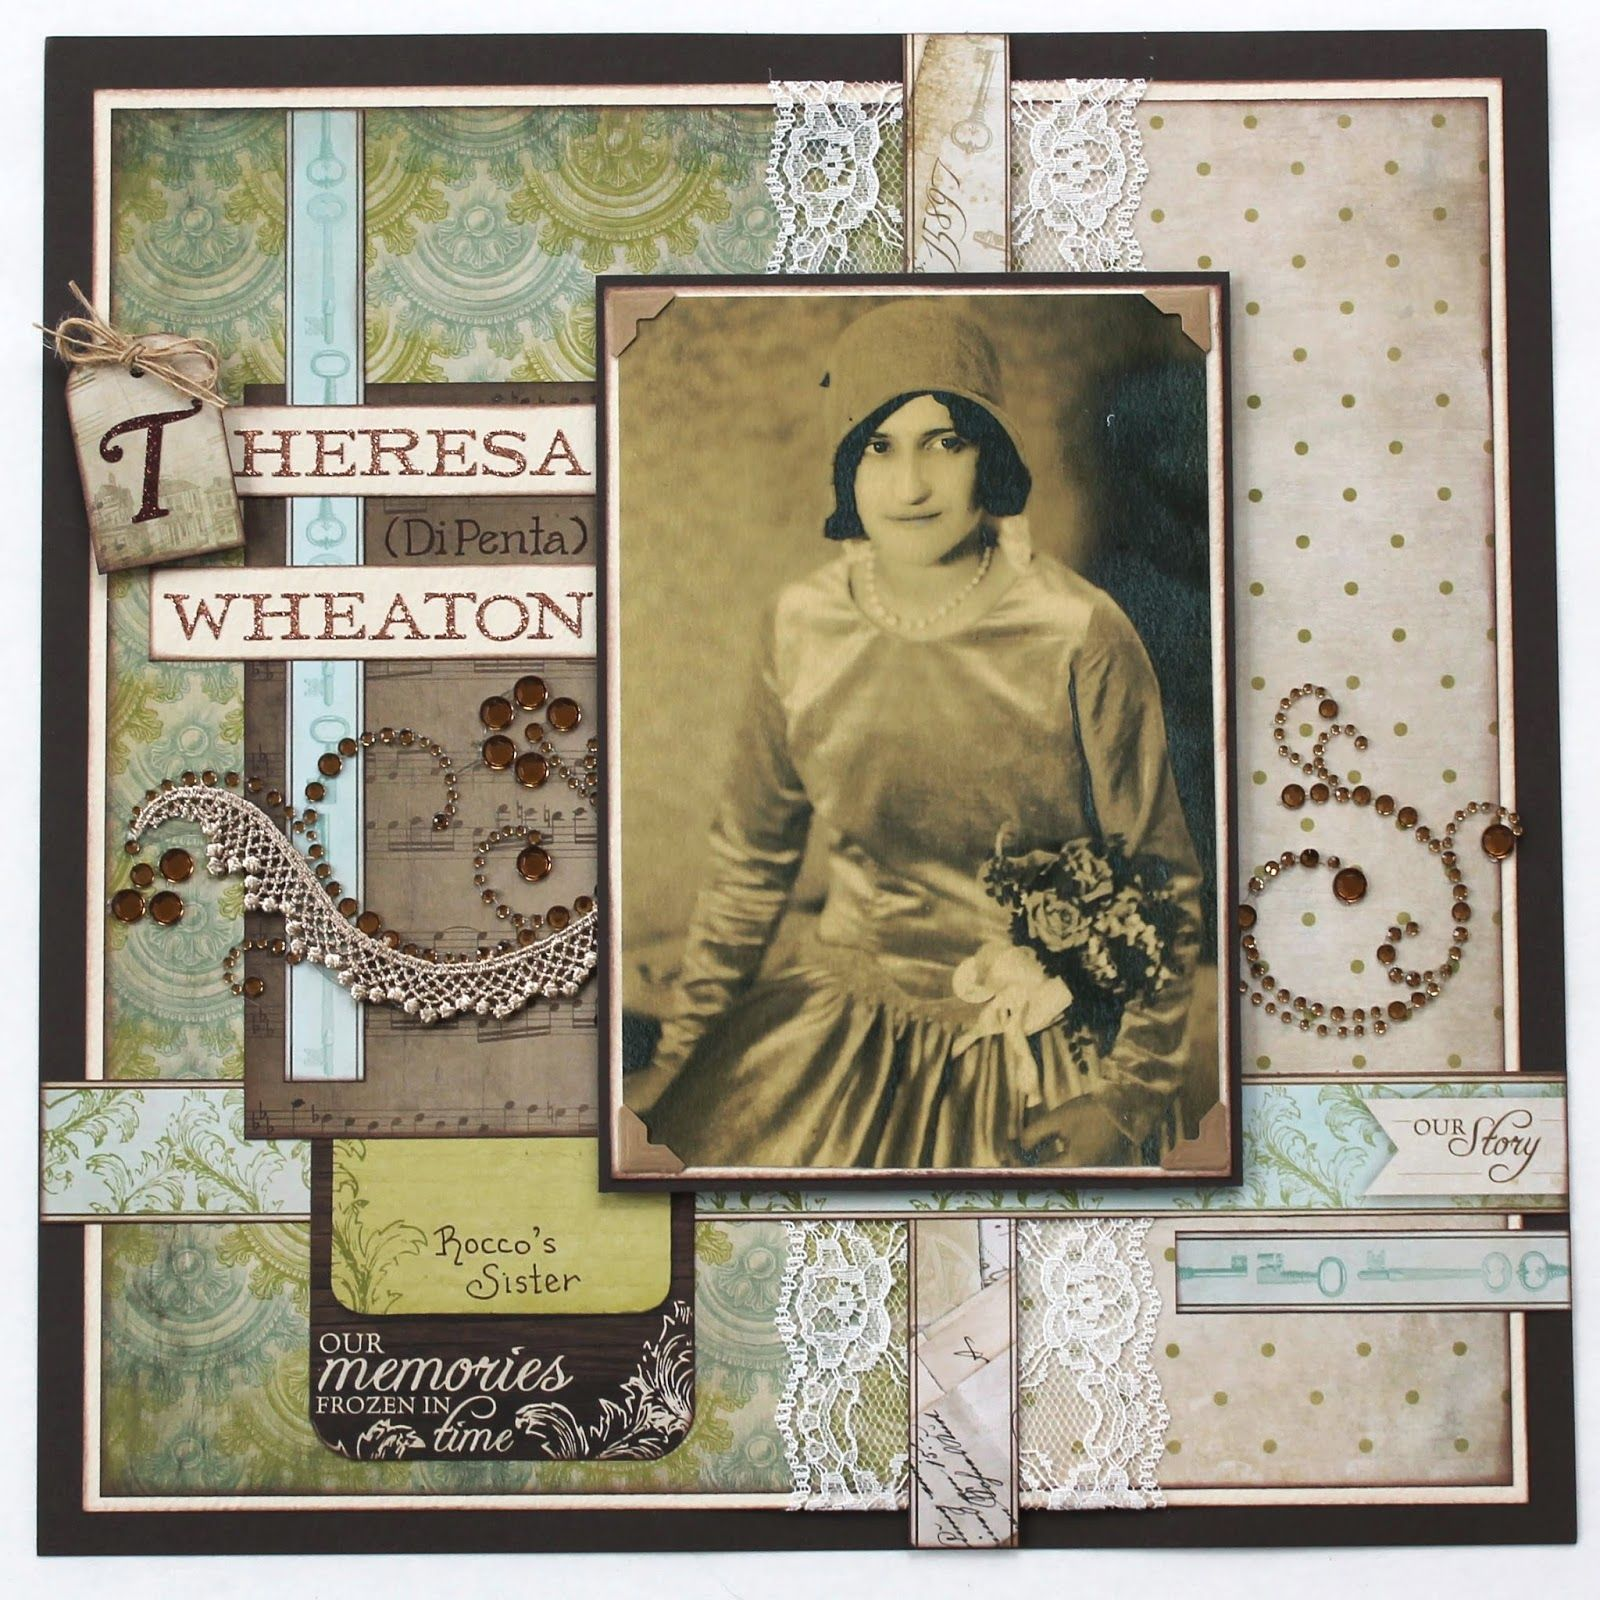 Scrapbook ideas history projects - Scrappy Chick Designs The Dipenta Project Part 1 Heritage Scrapbookingscrapbooking Ideasribbon